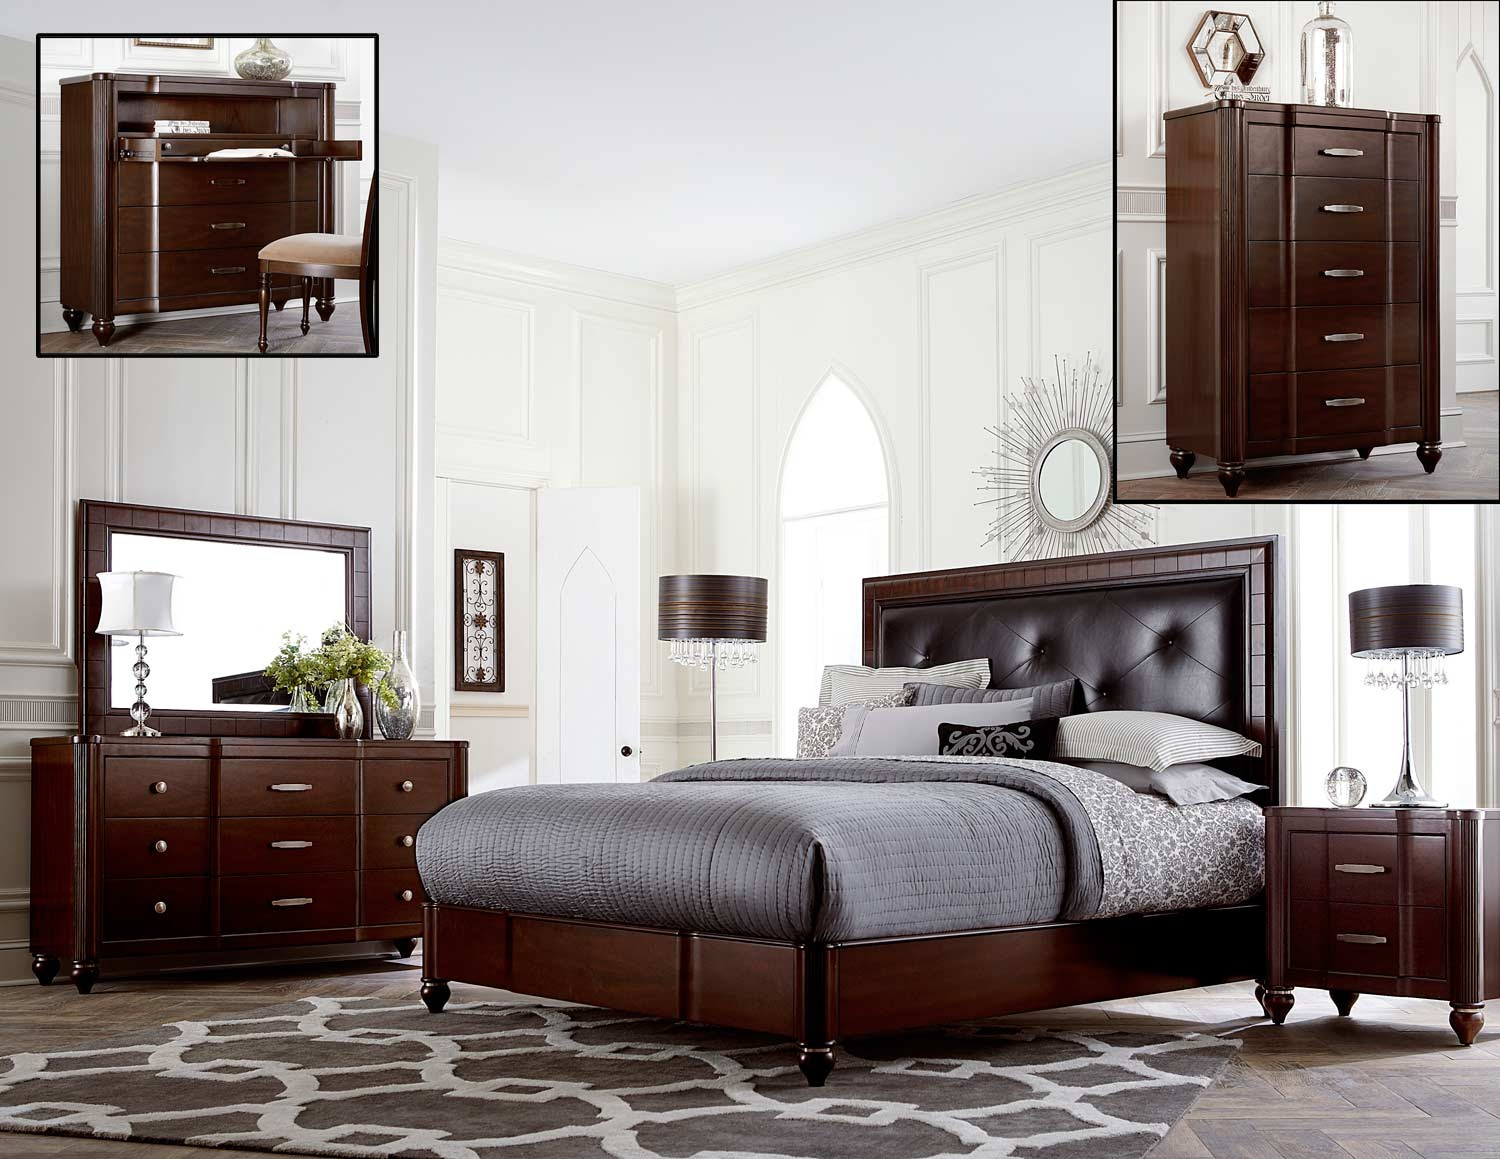 Collection Spotlight: Hillsdale Furniture Roma Bedroom Collection